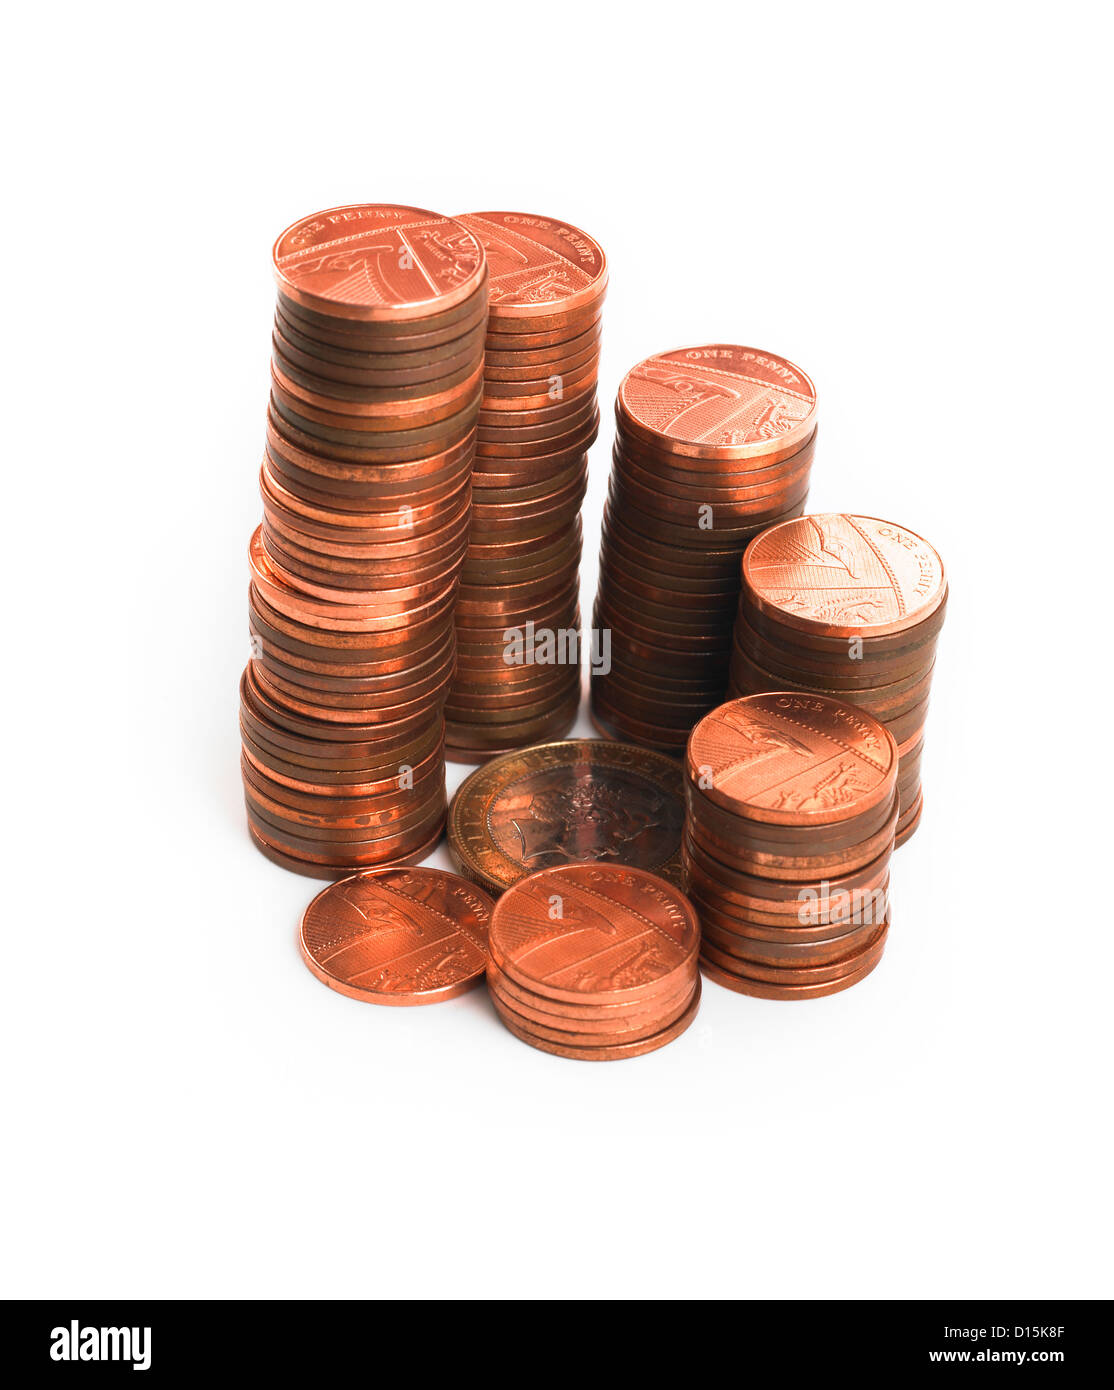 Stacks of one penny coins spiralling around a £2 coin Stock Photo